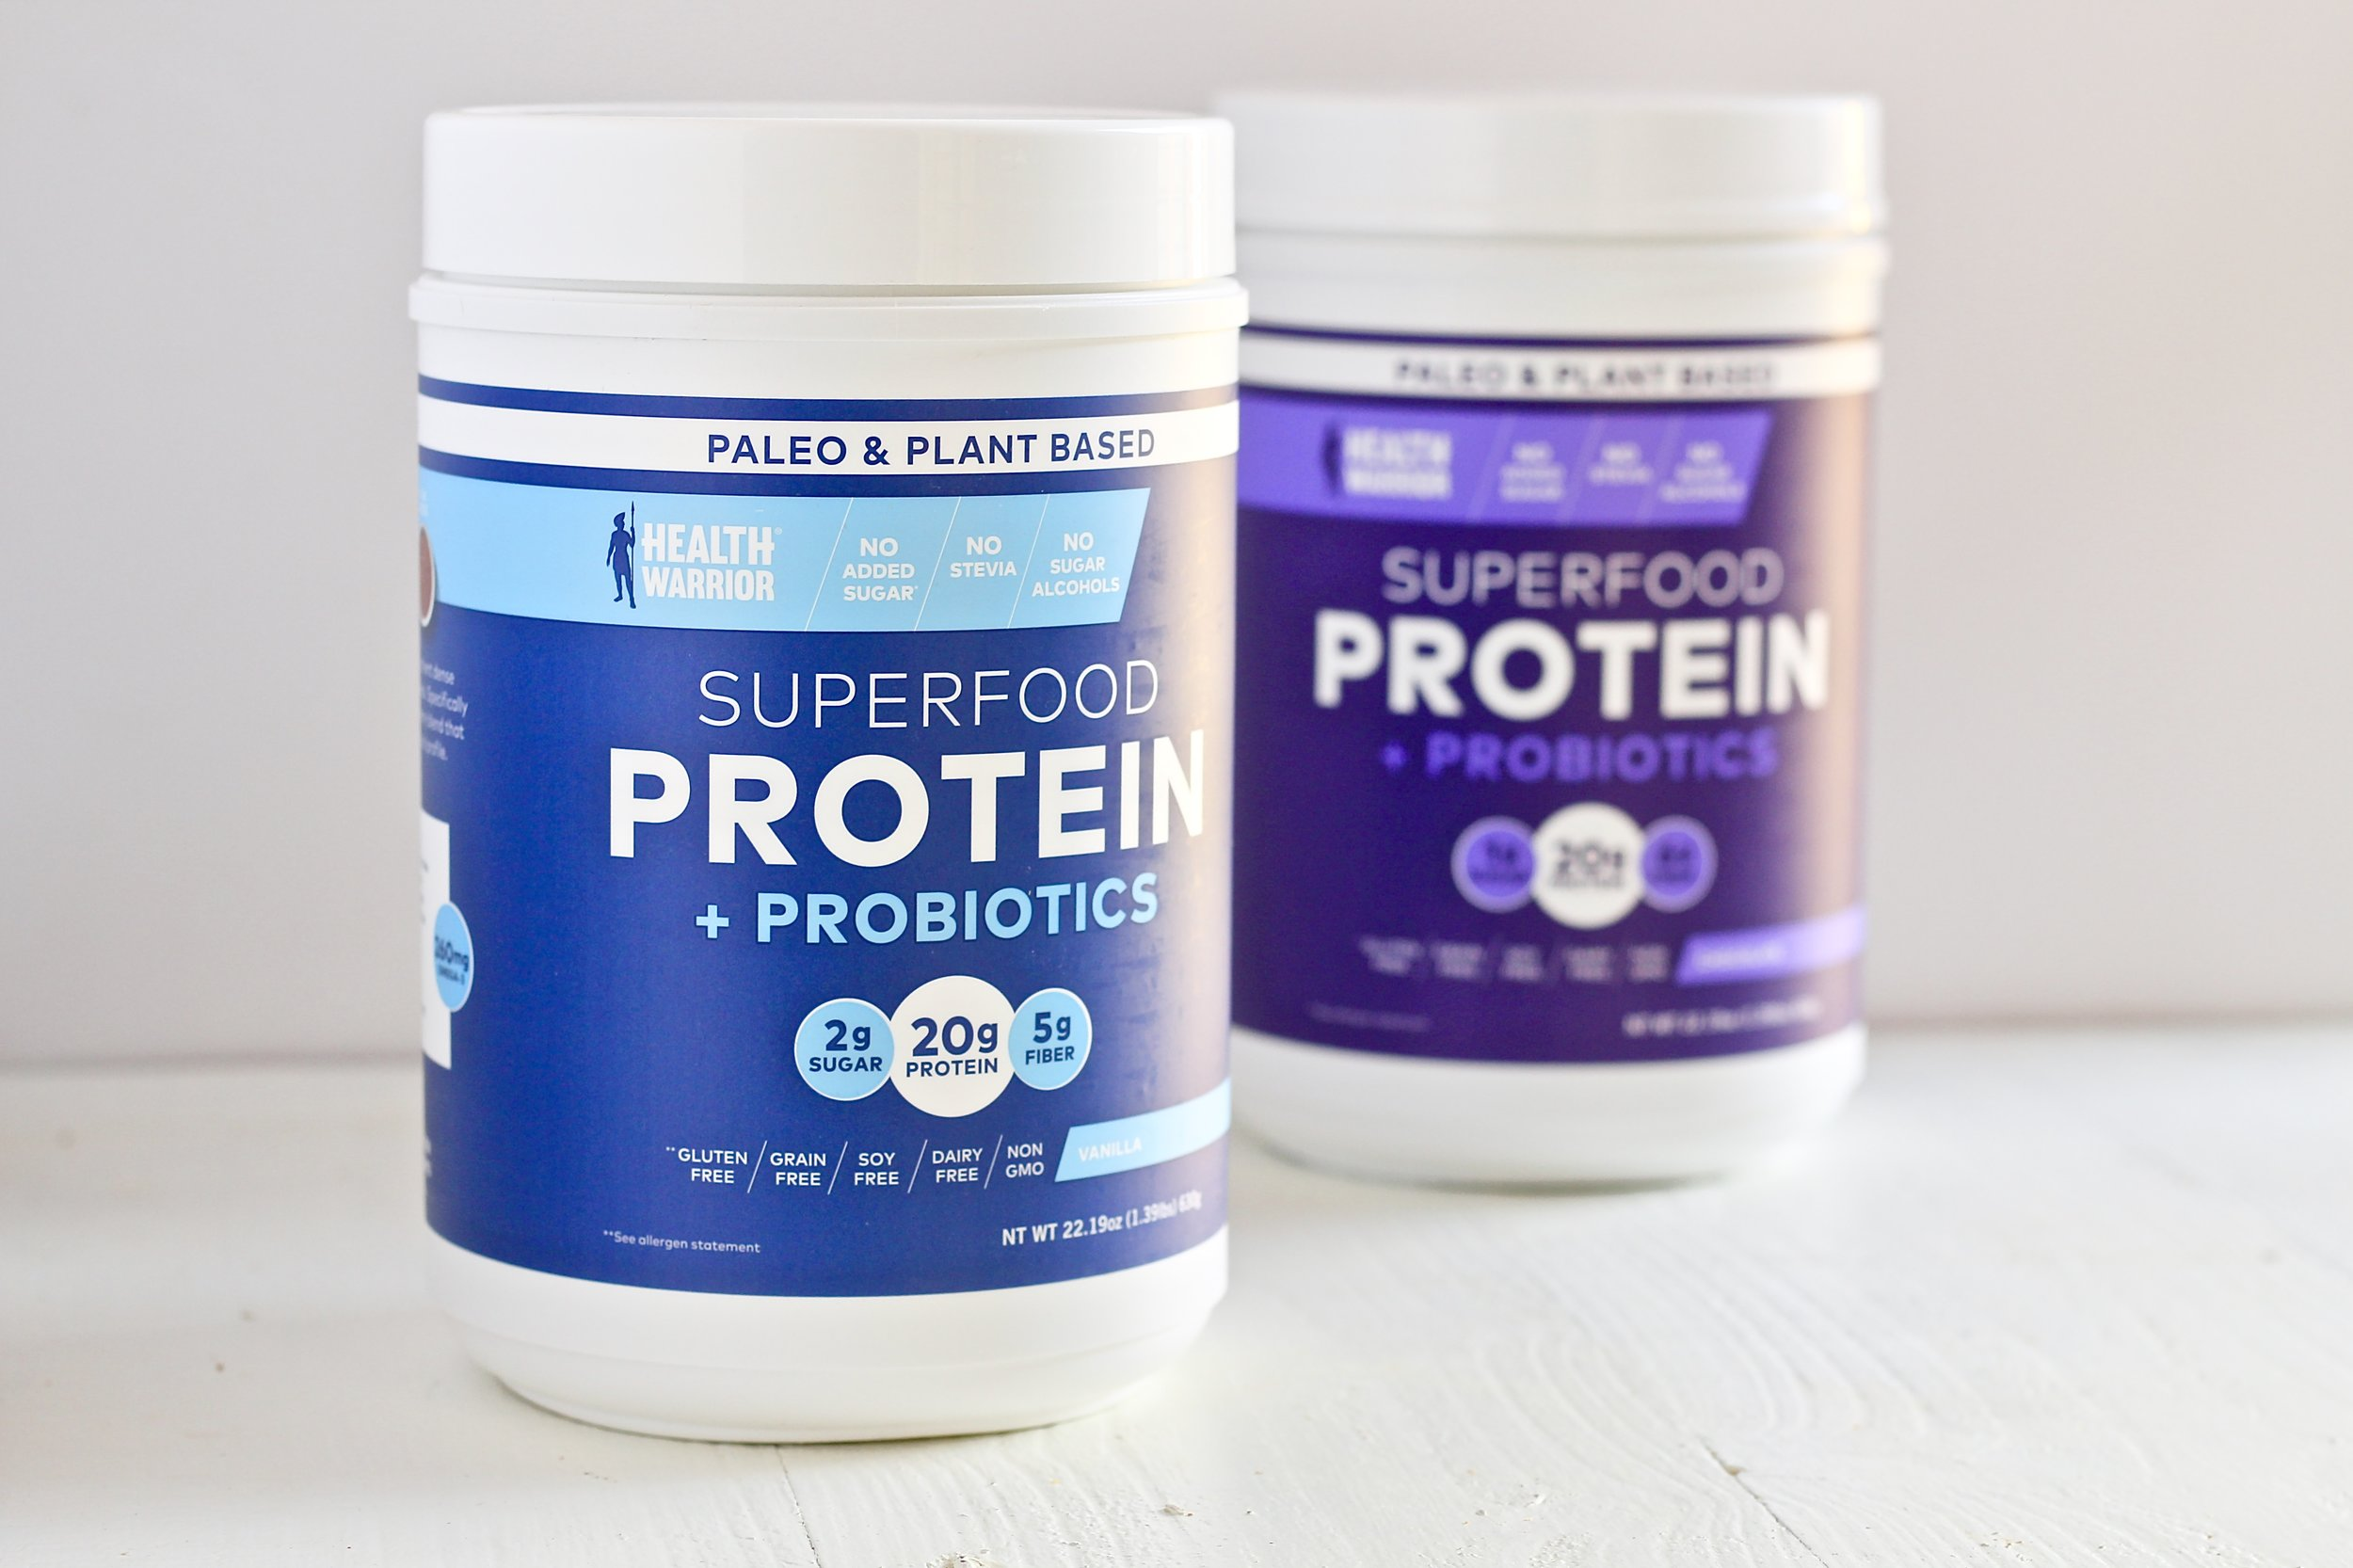 Artificial sweeteners, sugar alcohols, and natural sweeteners: Are they ok and how much can you use?  Health Warrior Superfood protein is lightly sweetened with Monk Fruit Extract.